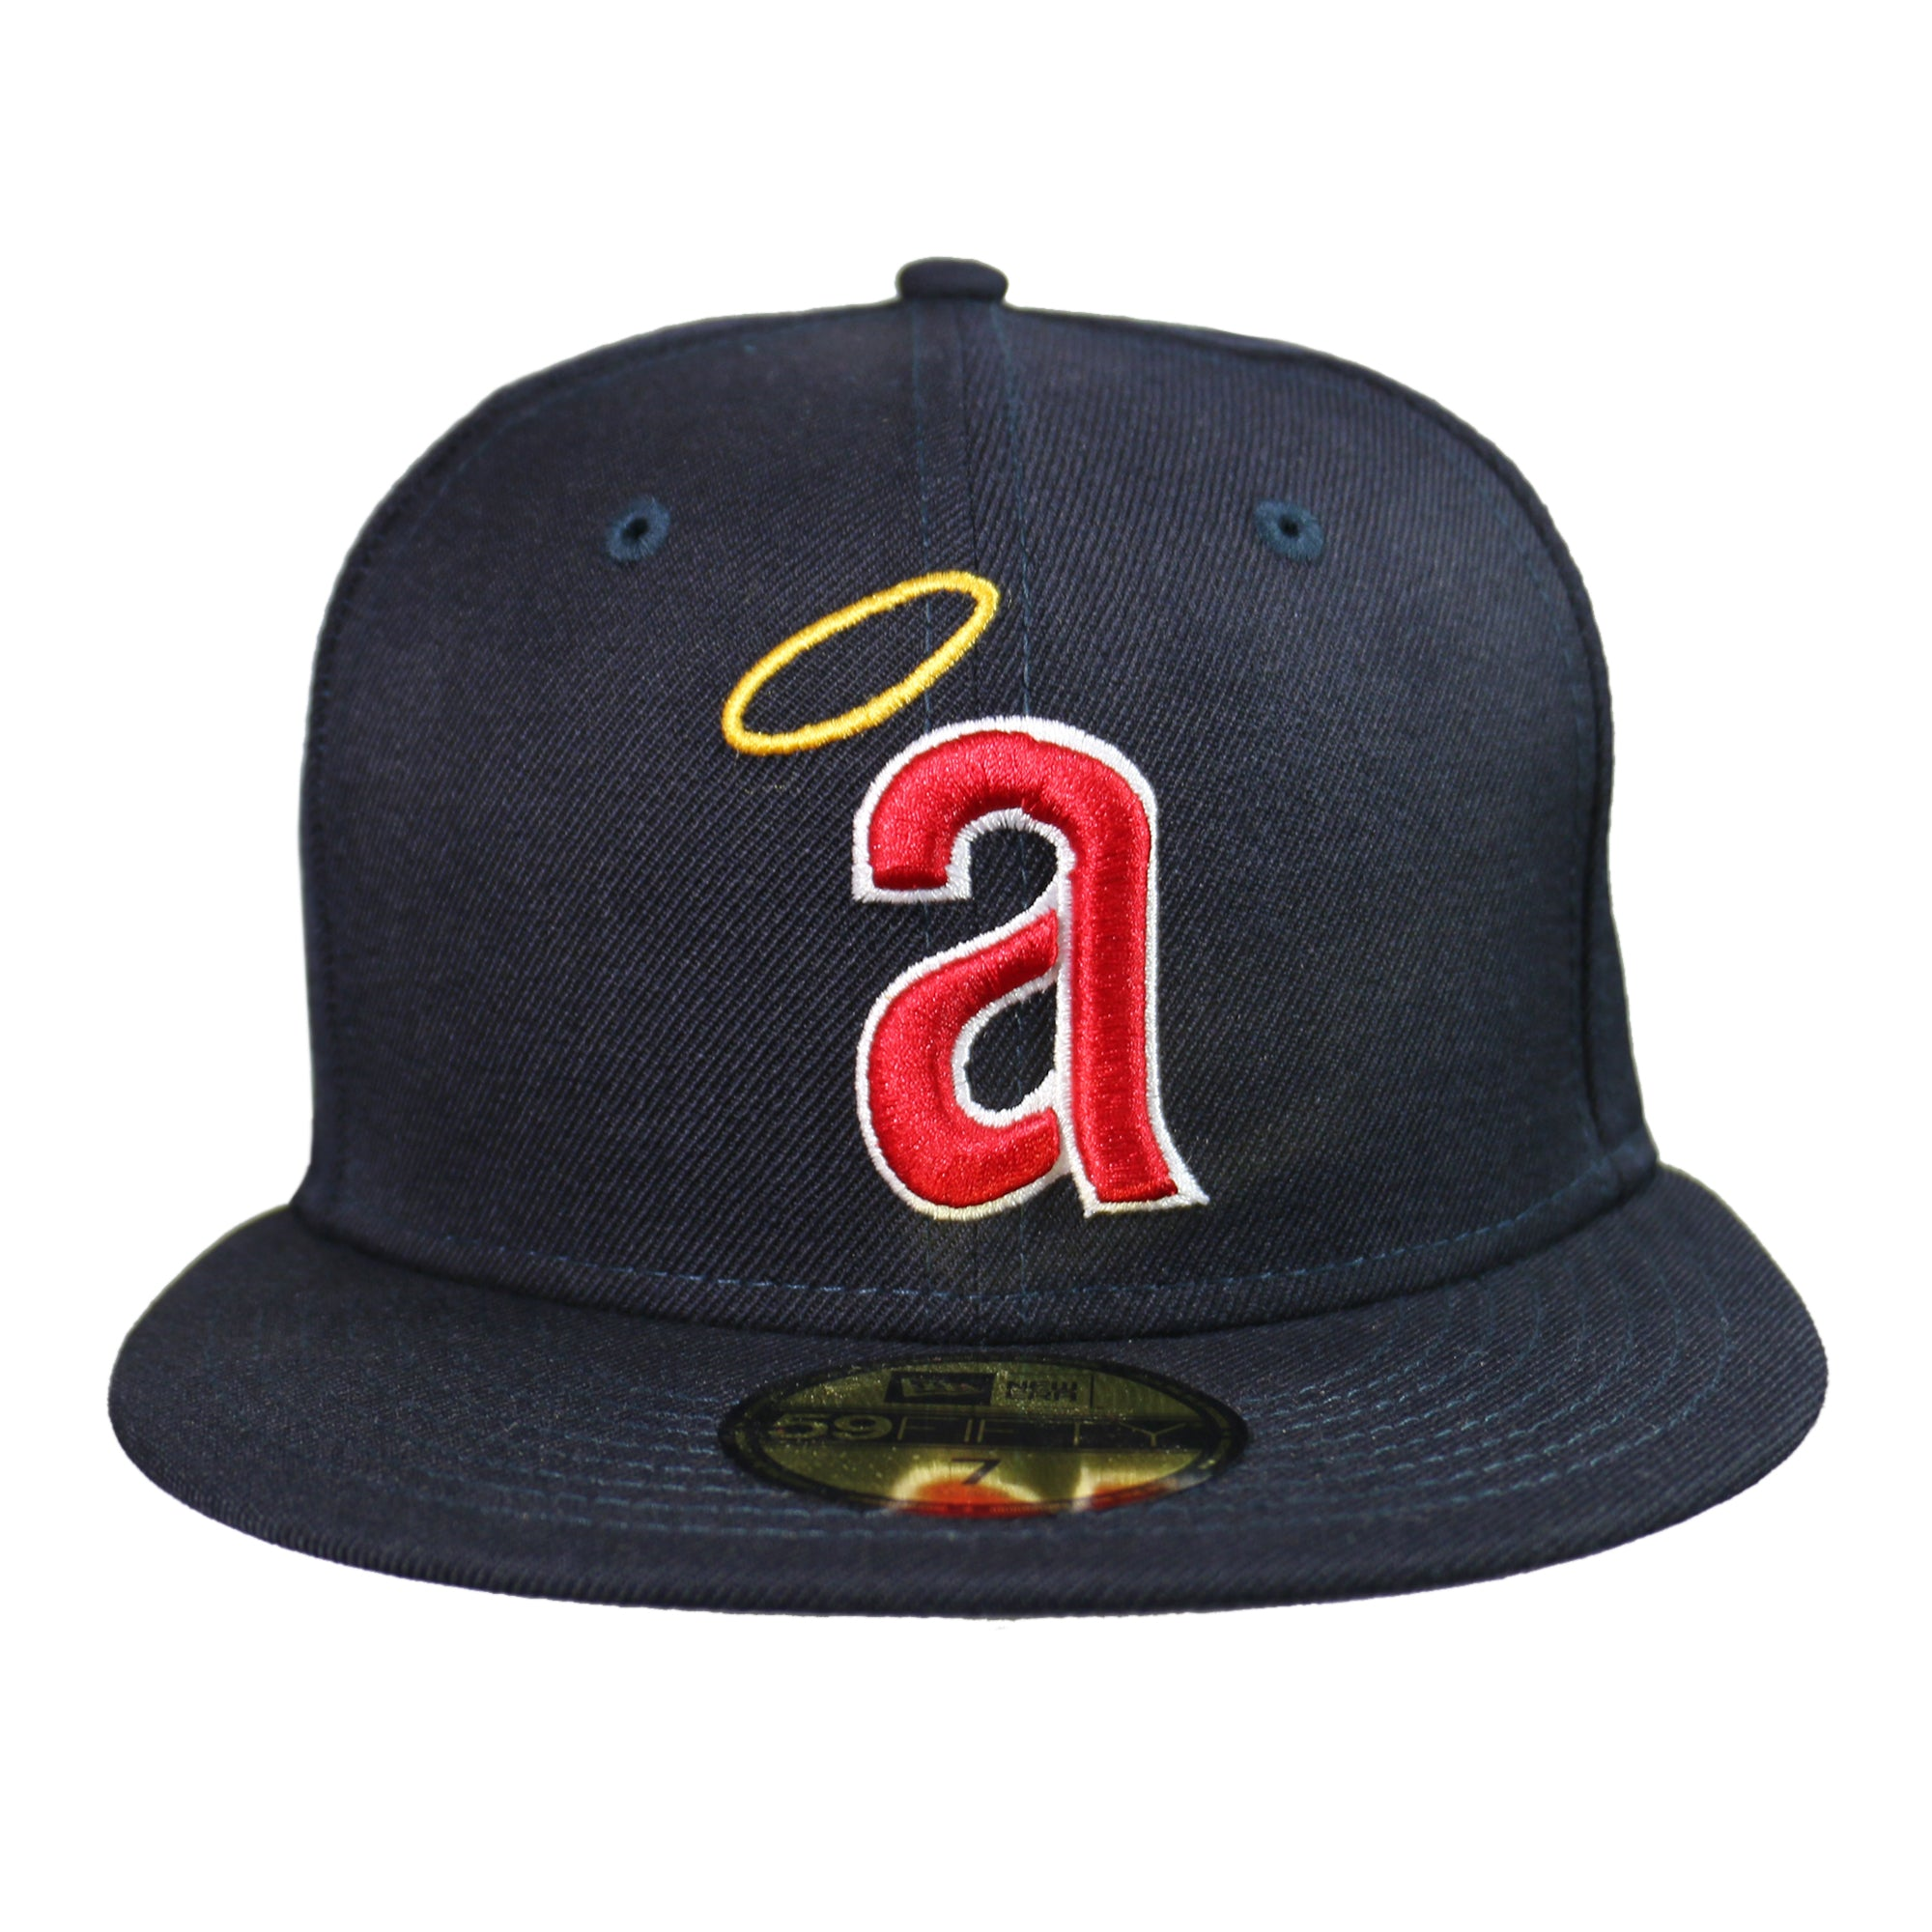 00a3d6a1363d8 Home > Products > New Era 59Fifty Hat California Angels Cooperstown 1971  Wool Navy Blue Fitted Cap